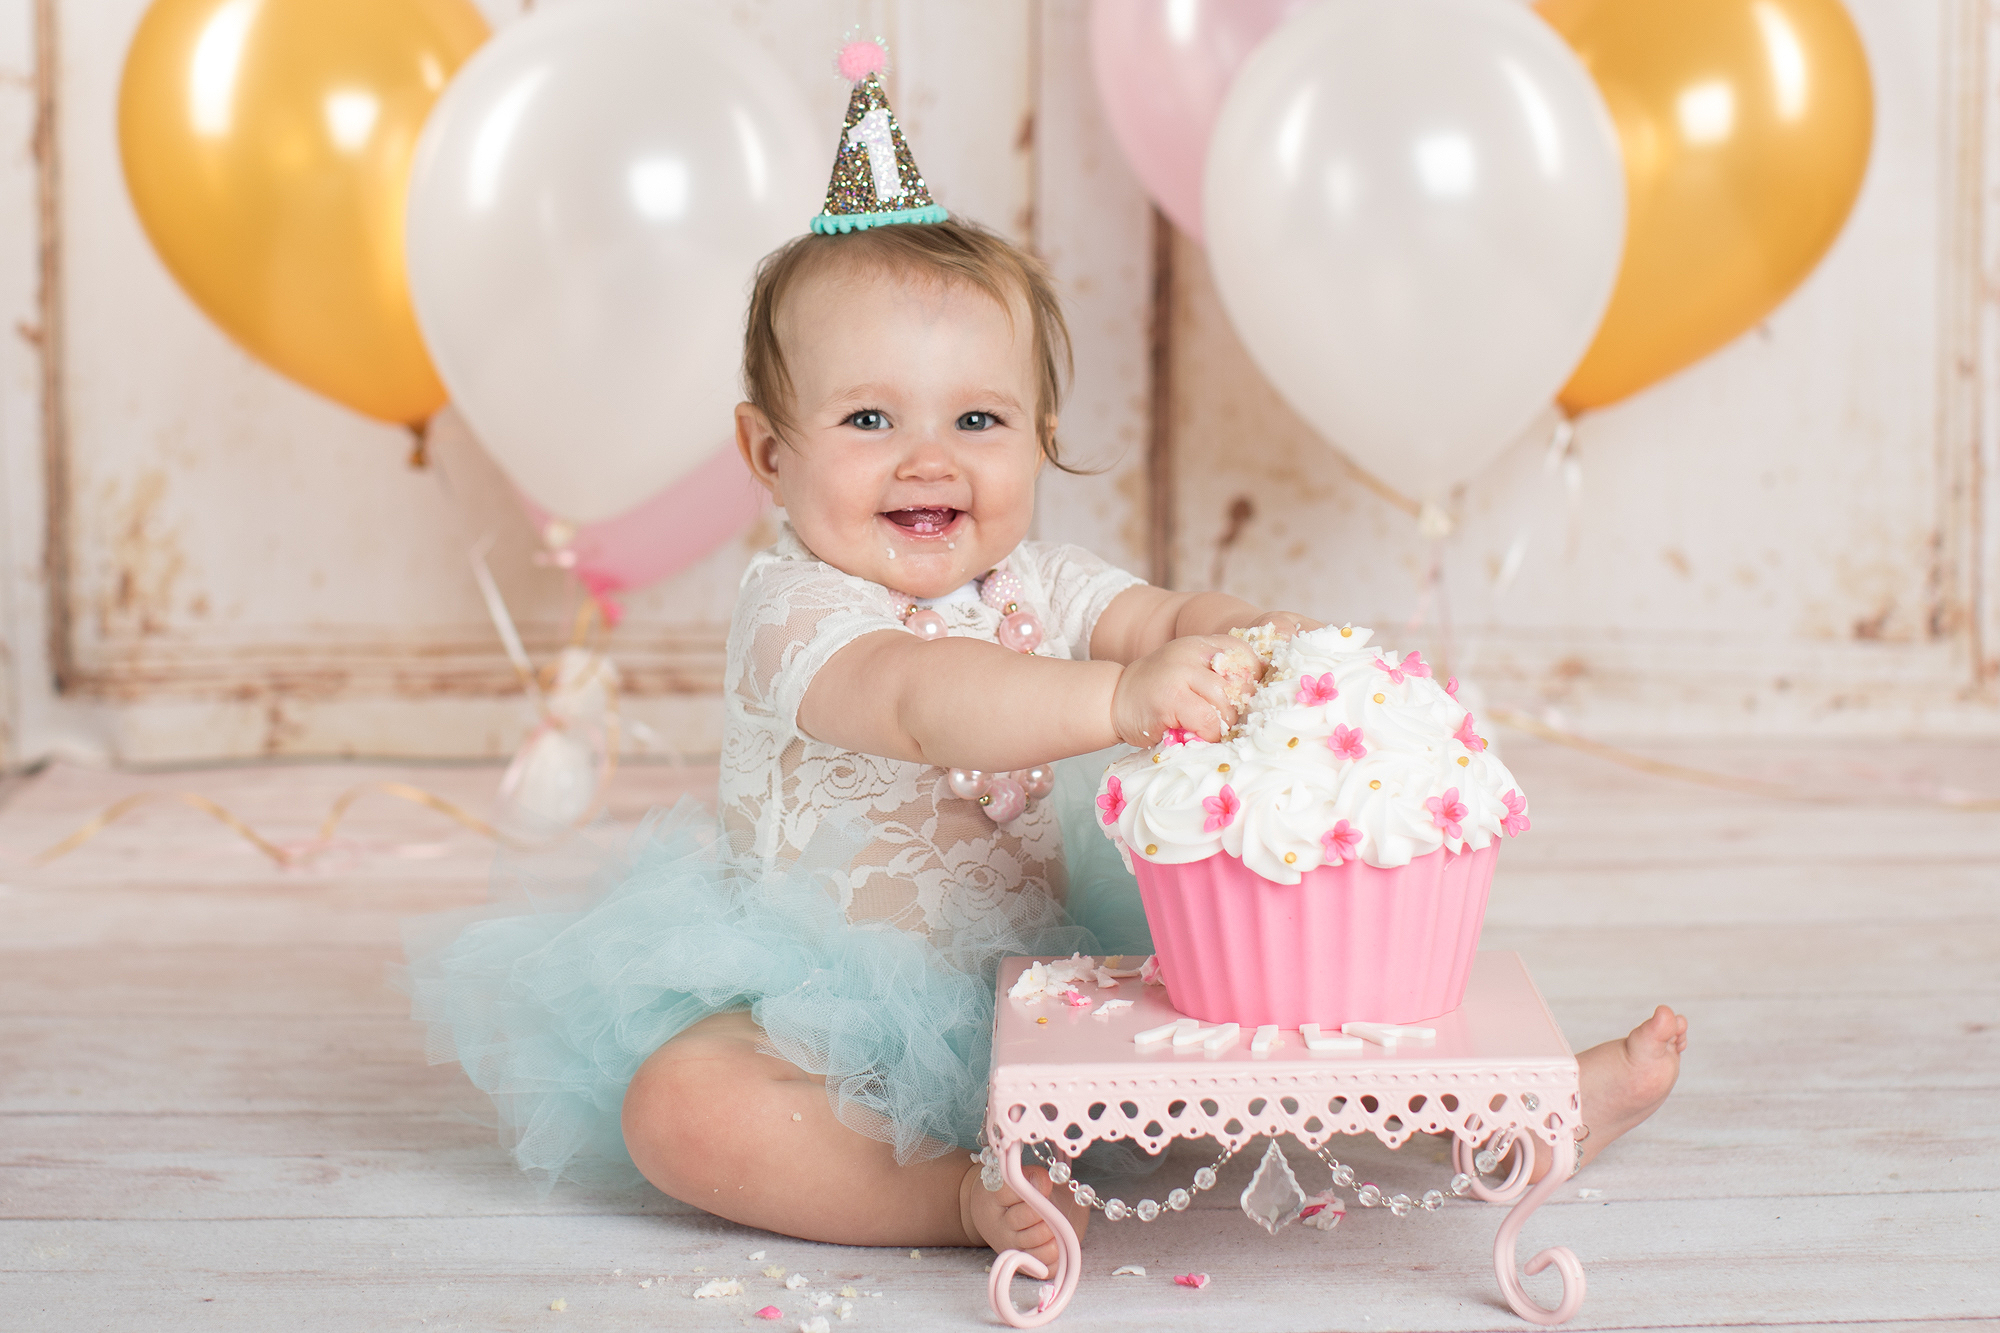 Book An Unforgettable Cake Smash Photography Session